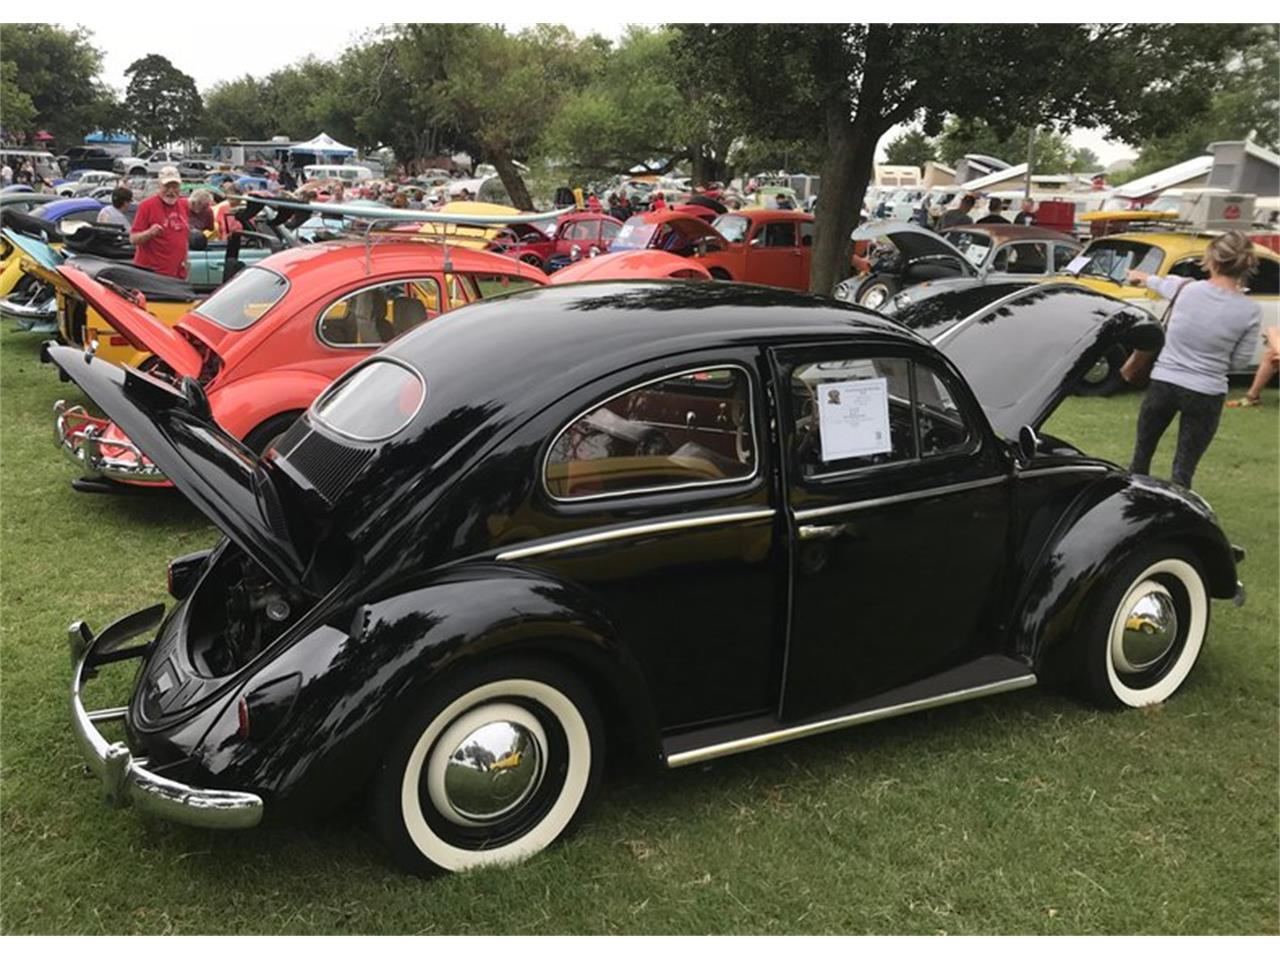 Large Picture of Classic 1957 Volkswagen Beetle located in Oklahoma City Oklahoma Auction Vehicle Offered by Leake Auction Company - PFMY